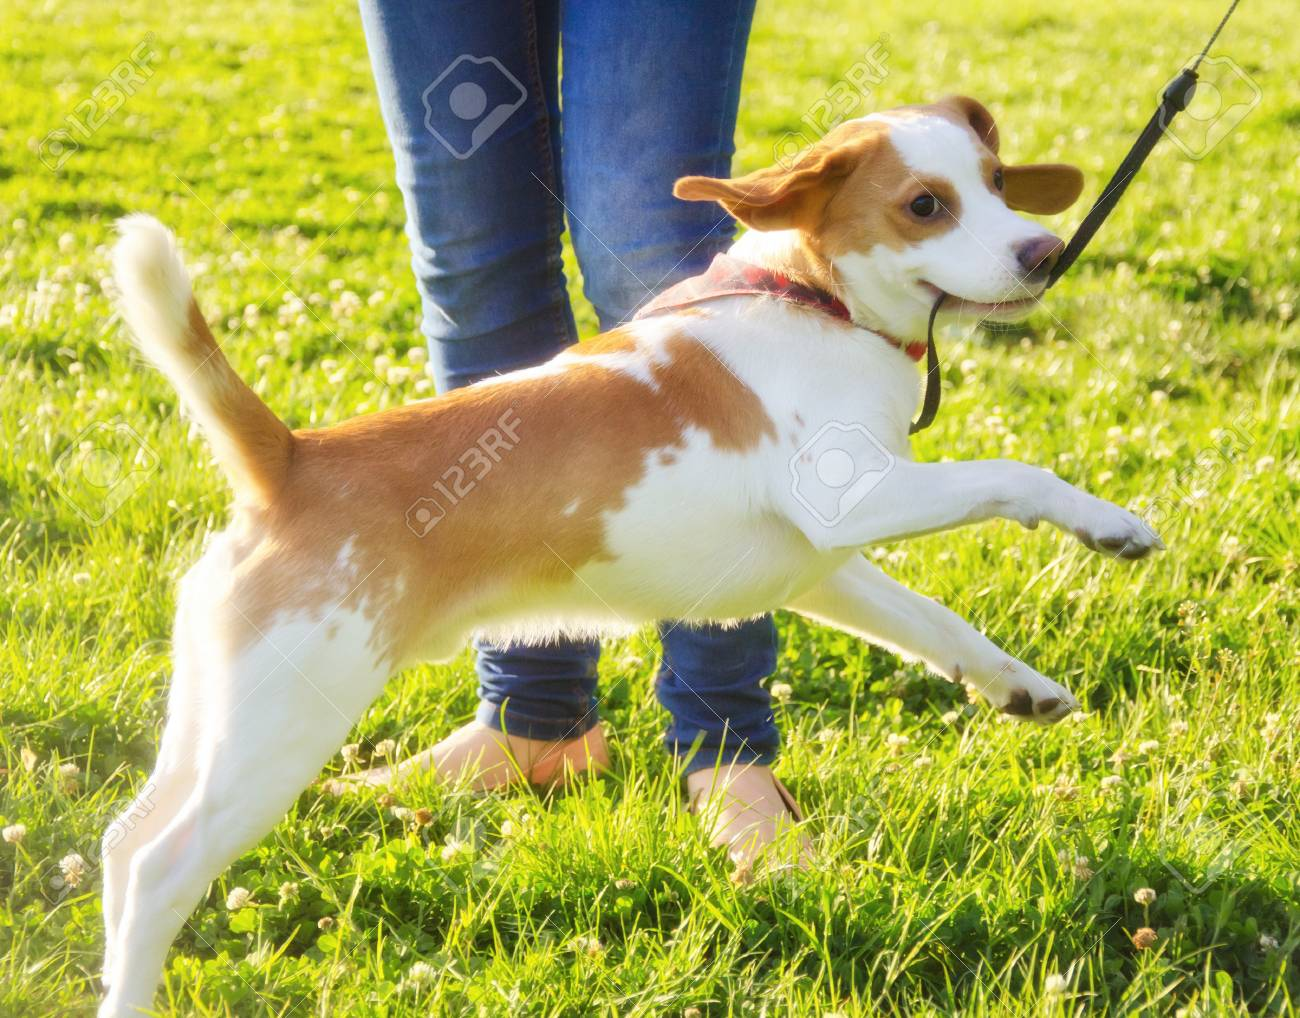 Funny Happy Cute Beagle Puppy Jumping Next To Its Owner Stock Photo Picture And Royalty Free Image Image 85892198